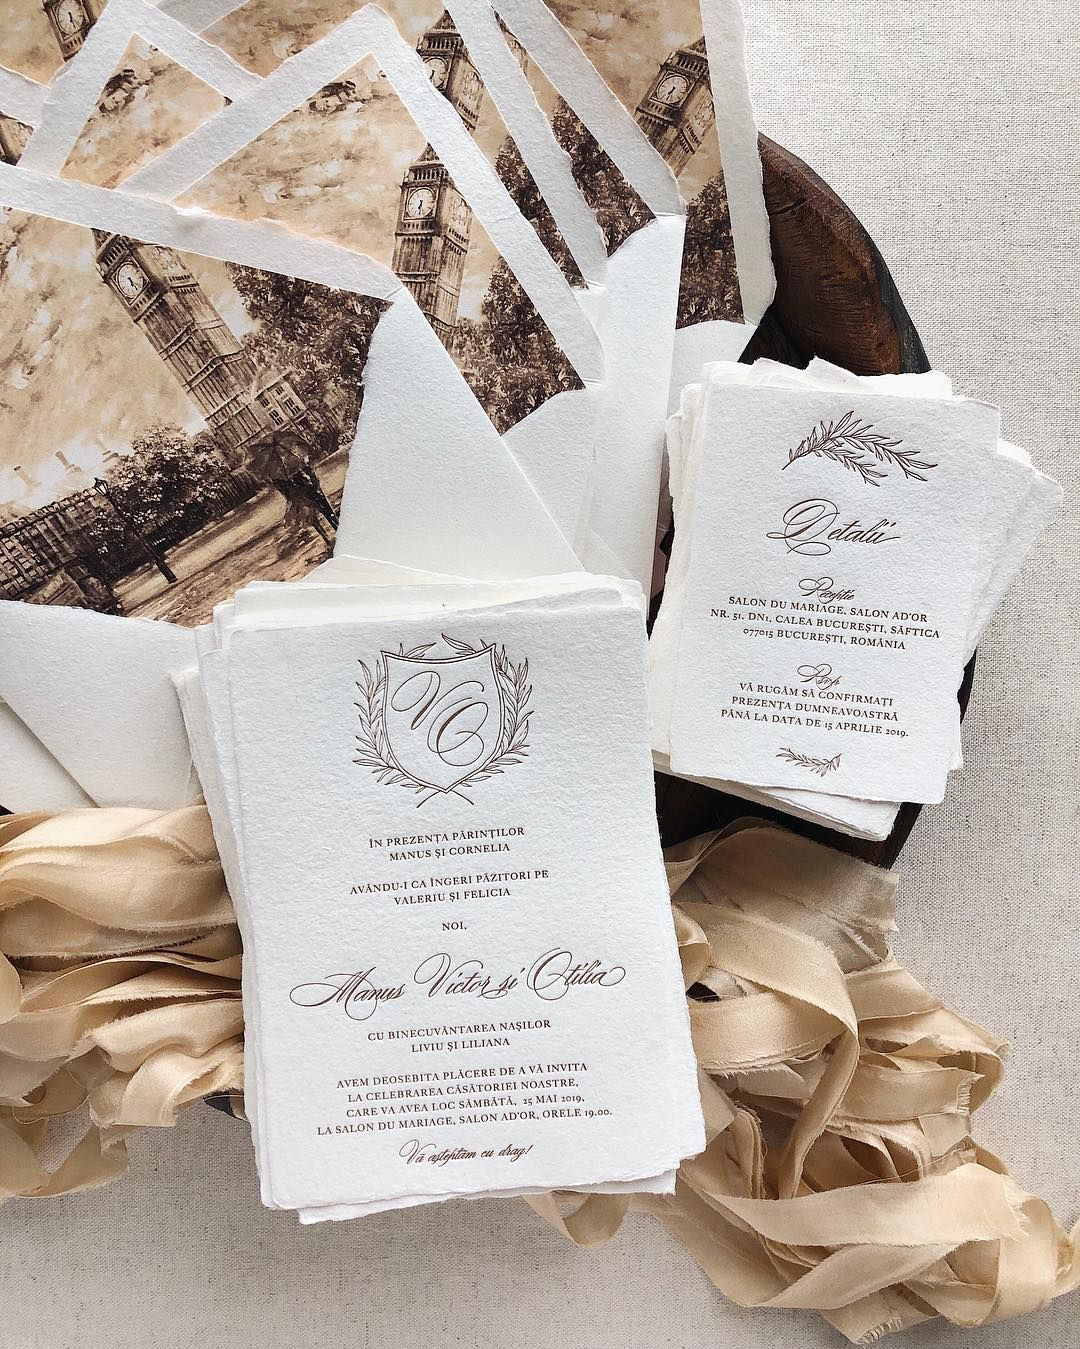 Letterpress Wedding Invitation On Handmade Paper With Envelopes With